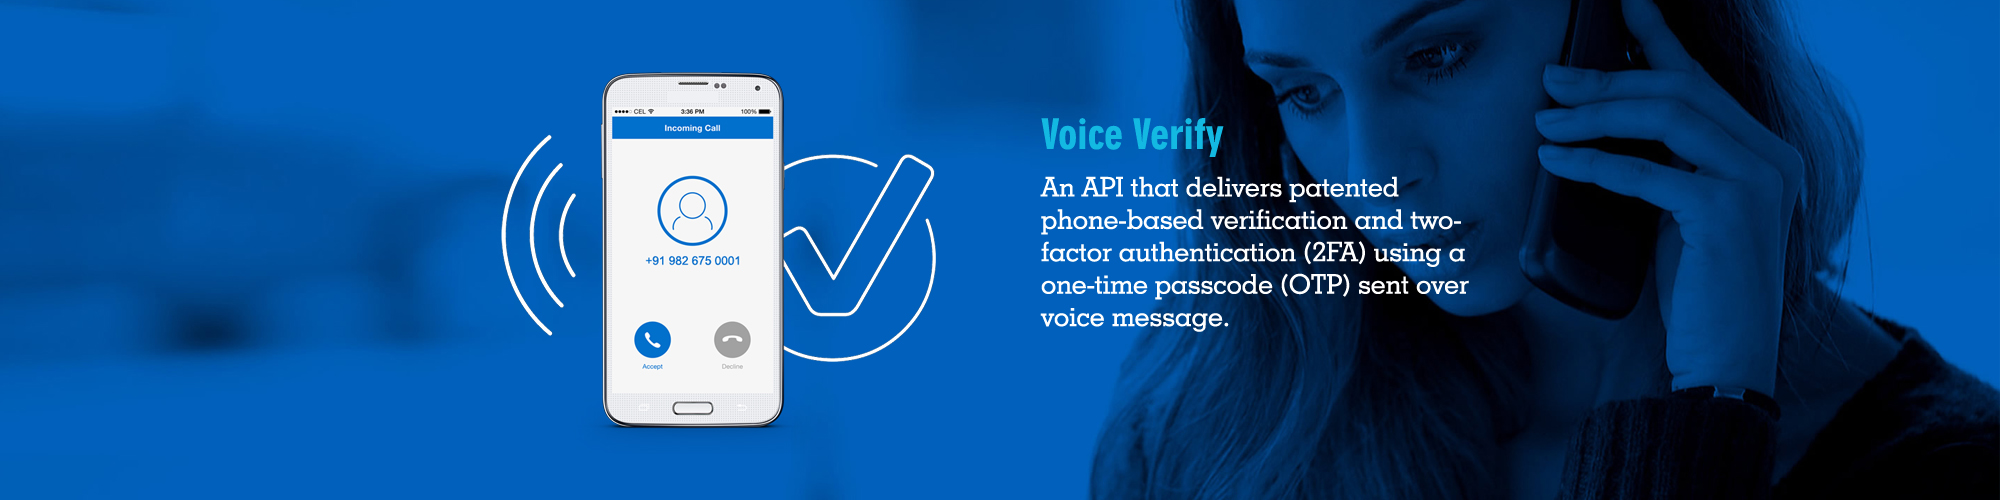 OTP Voice Verification